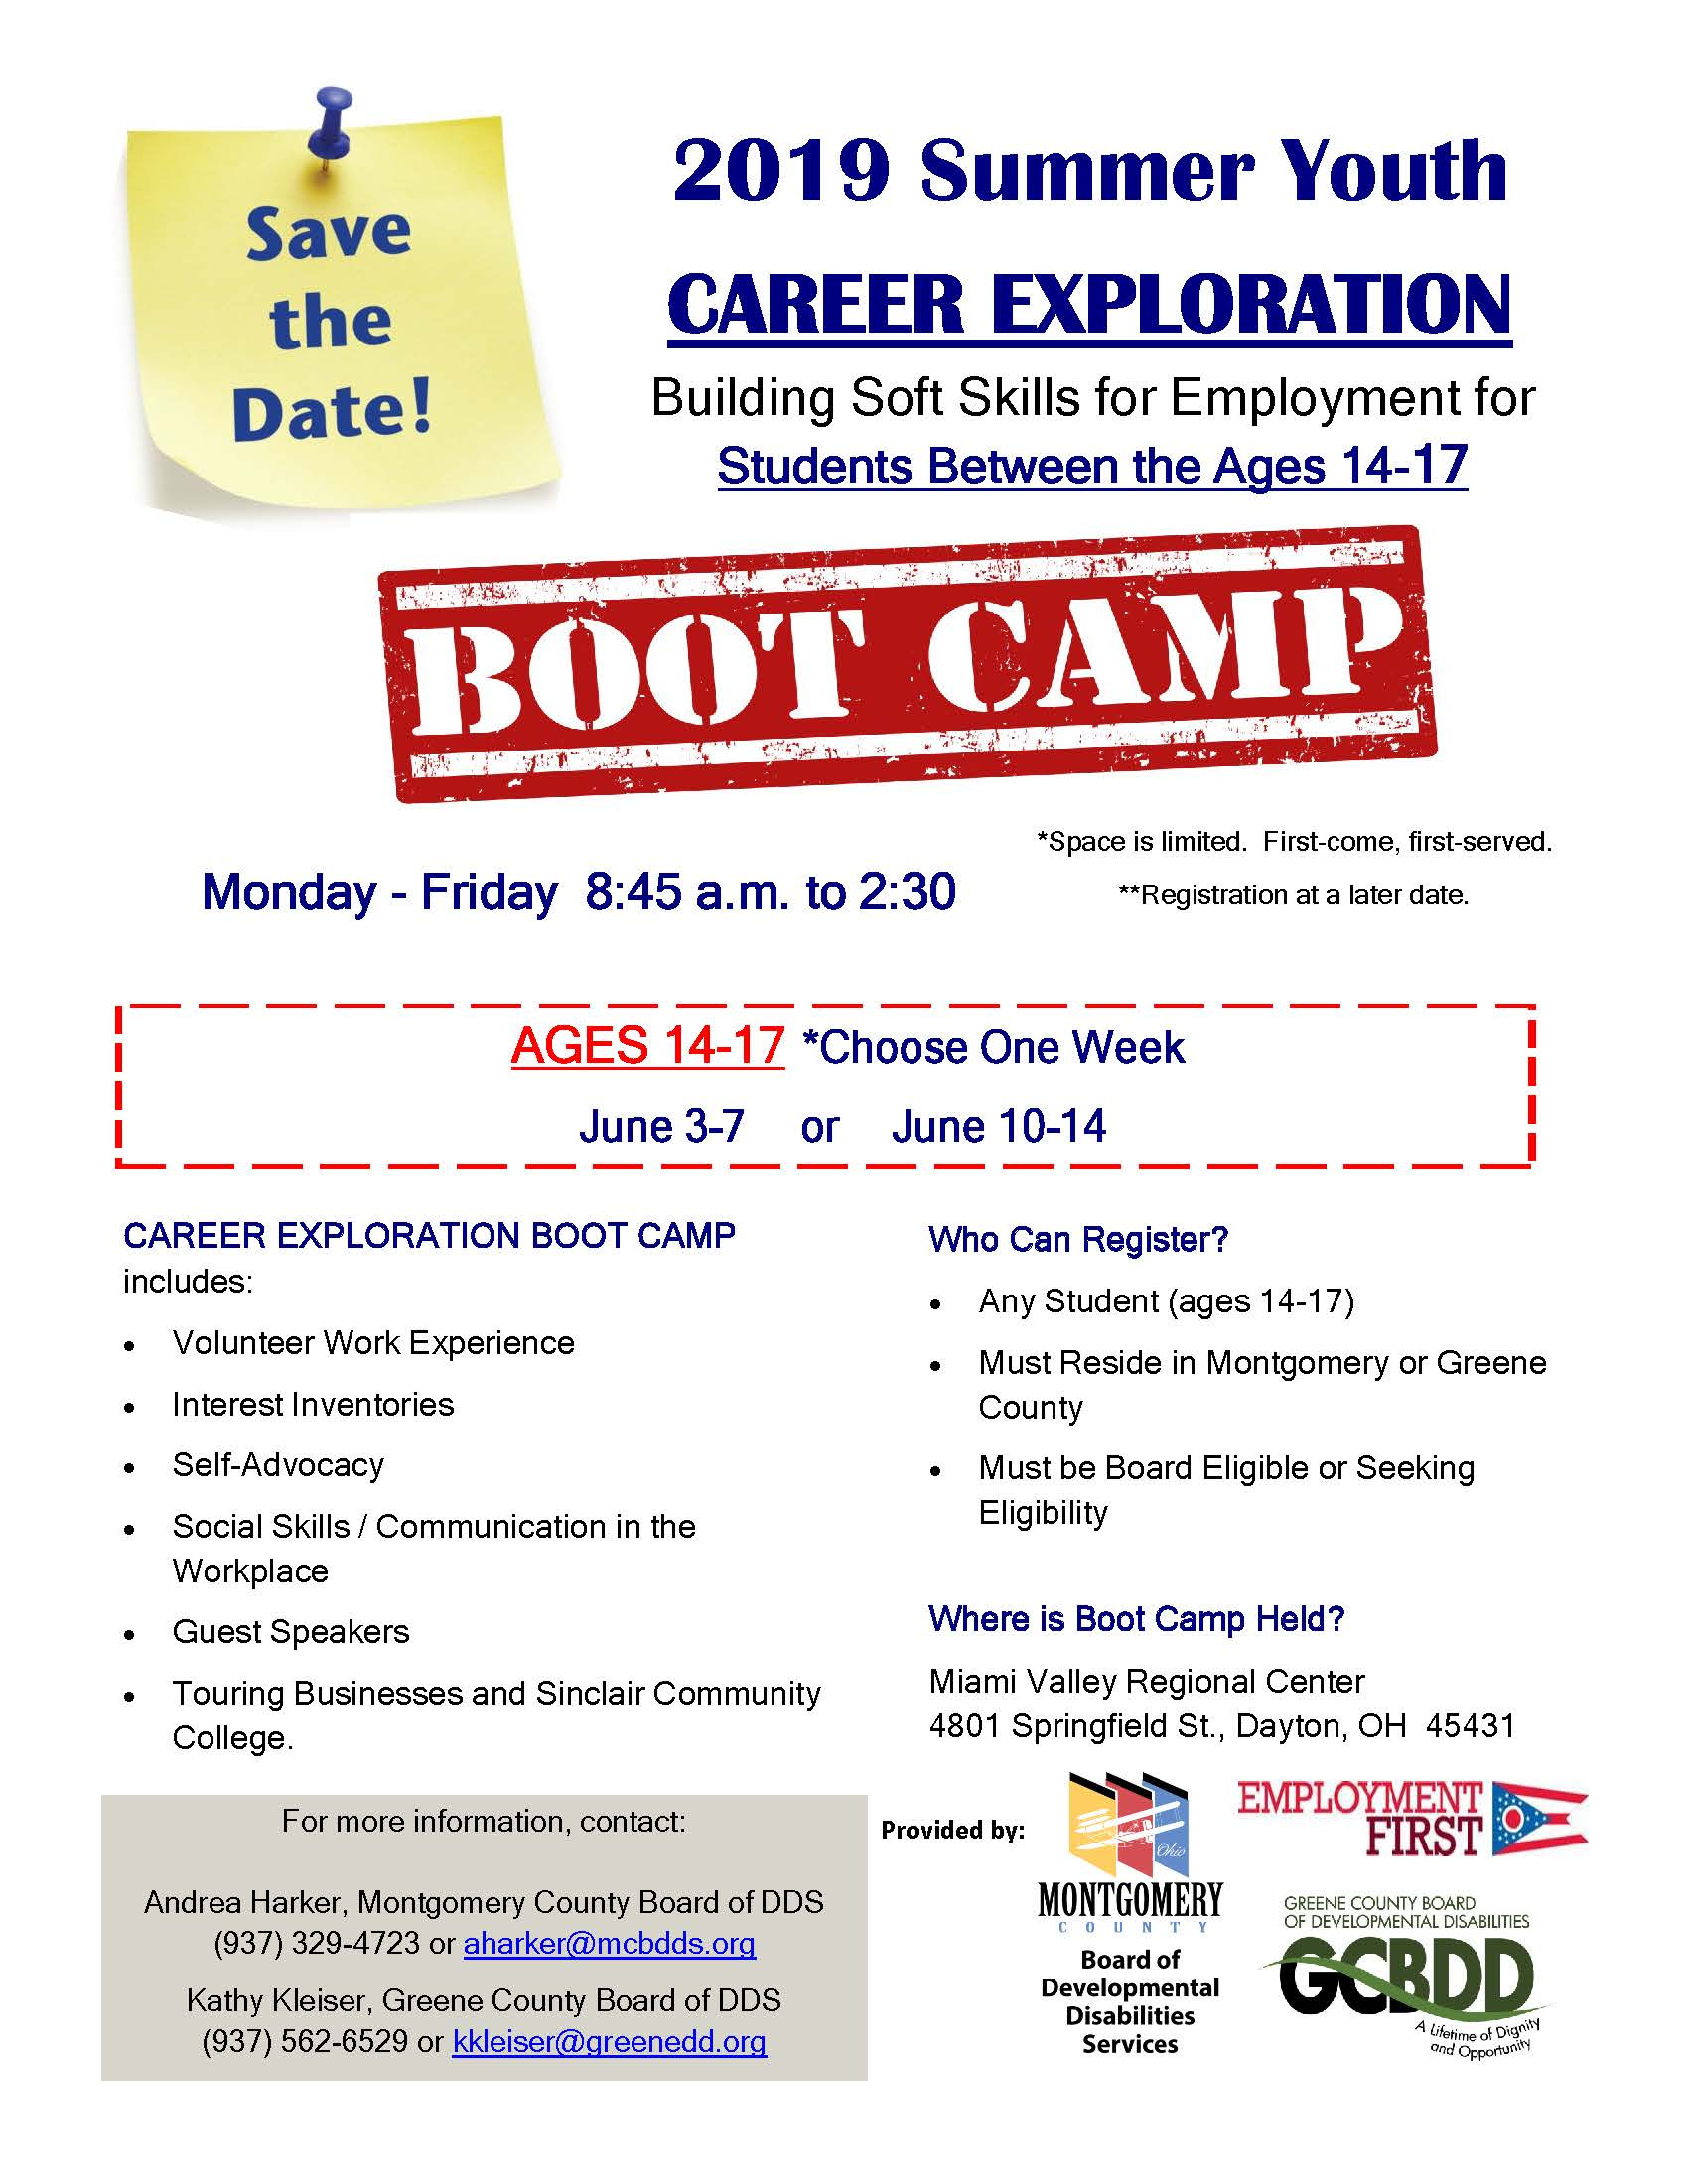 2019 Career Exploration Boot Camp Flyer